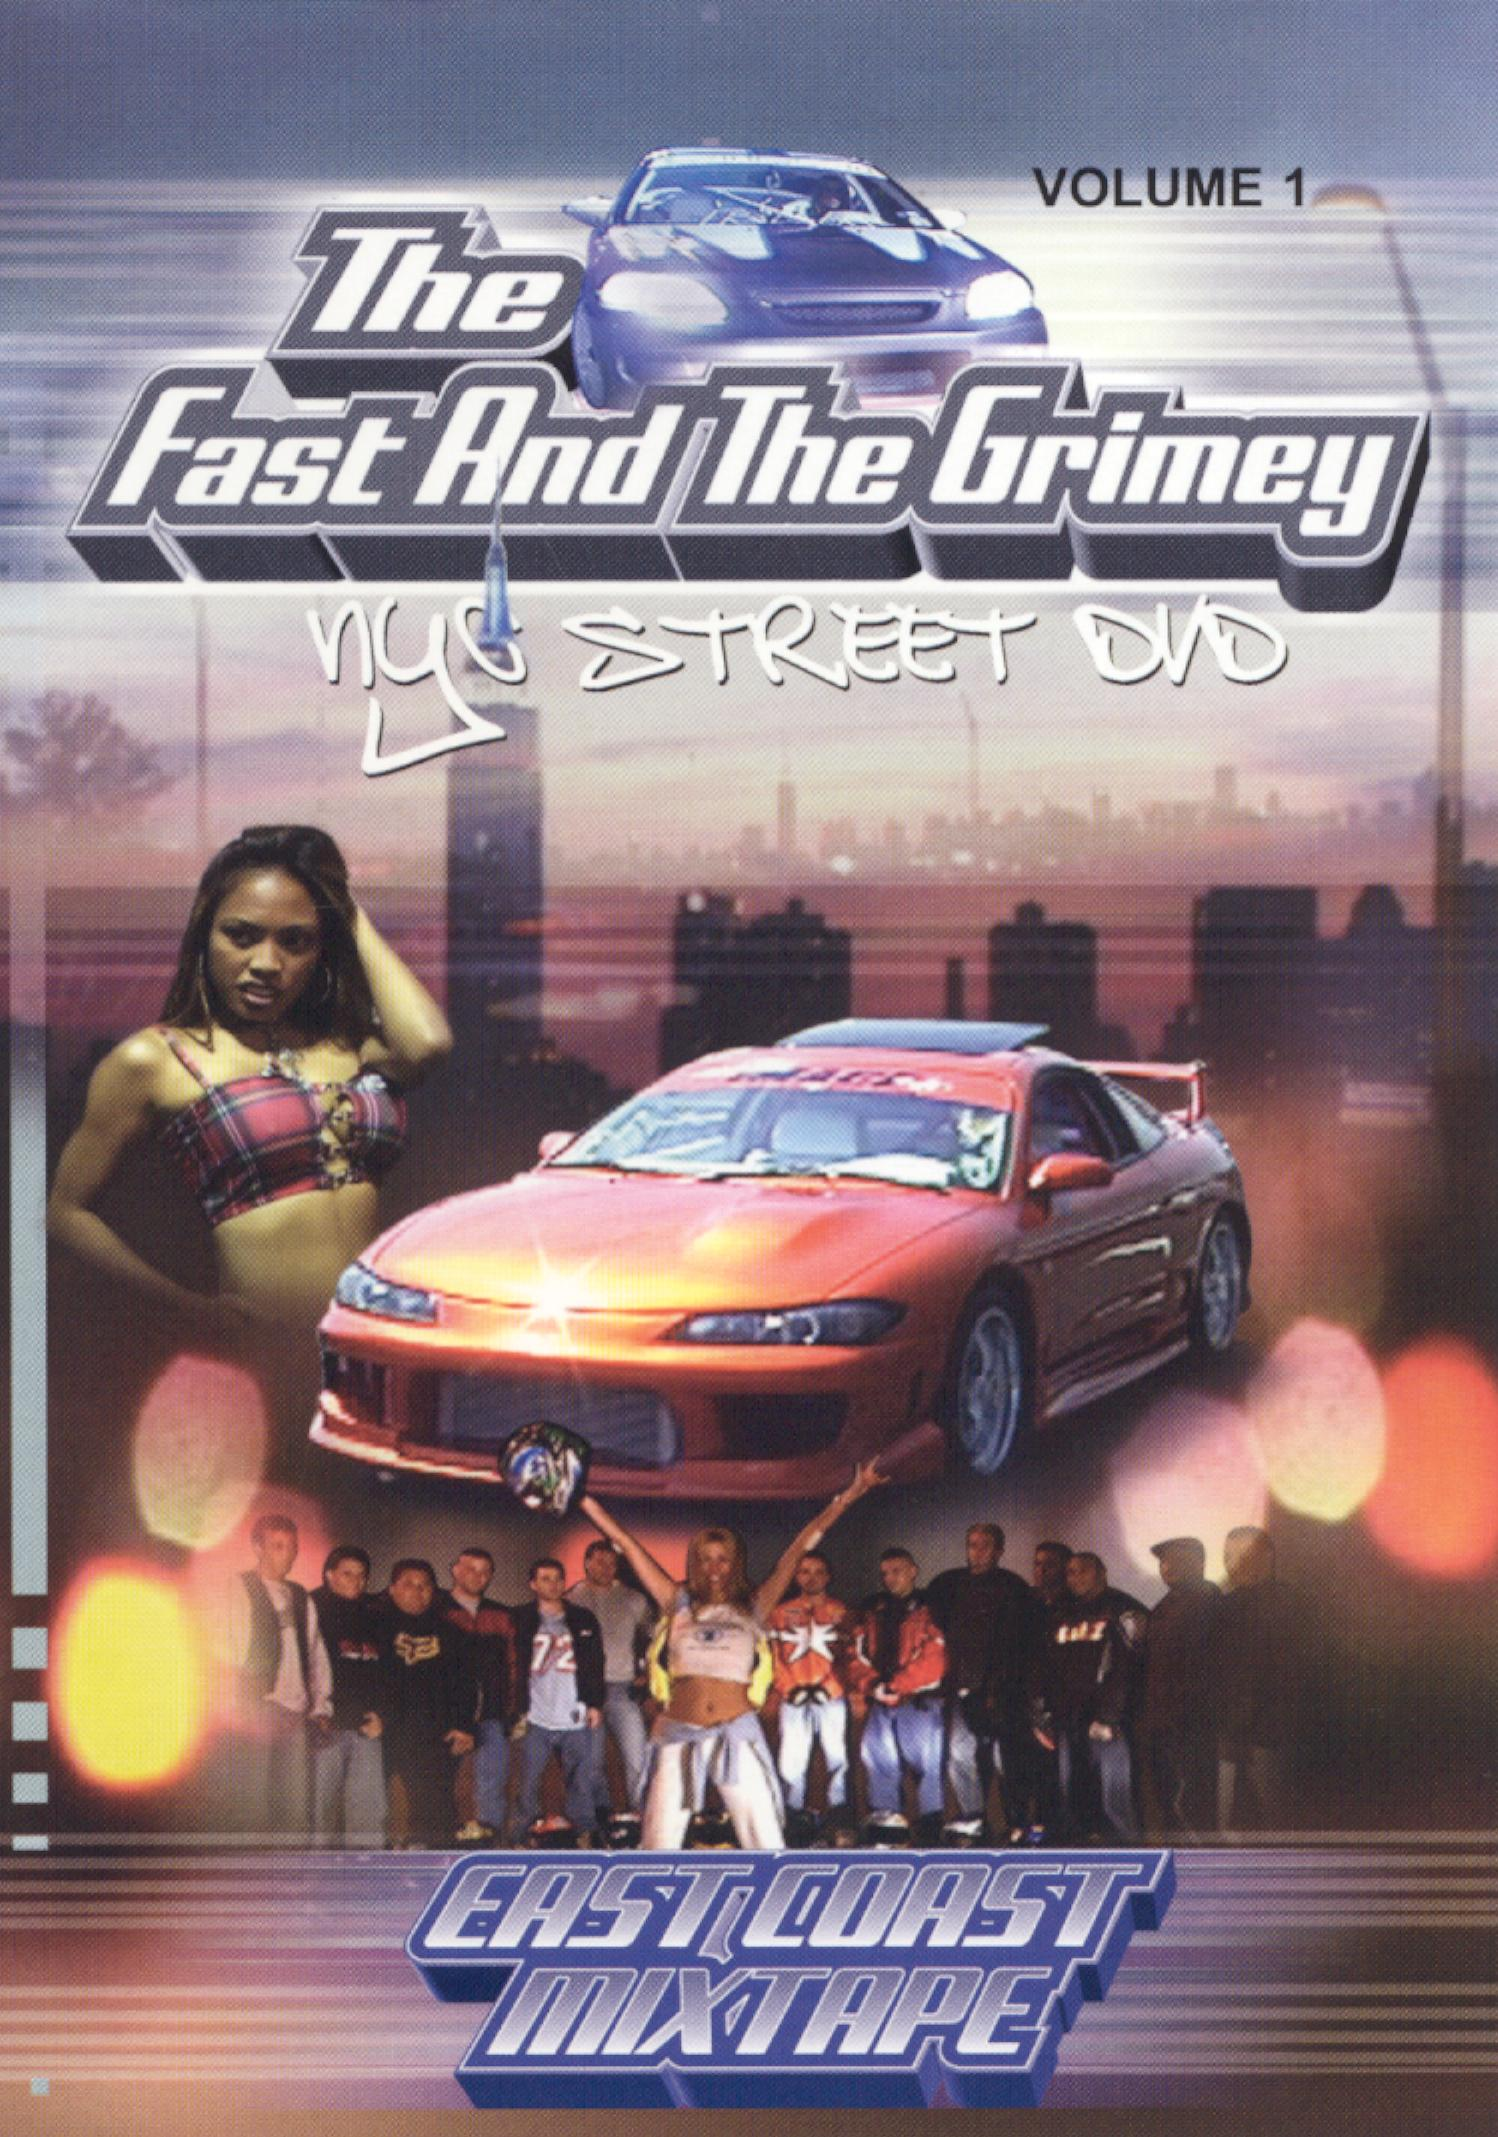 The Fast and the Grimey